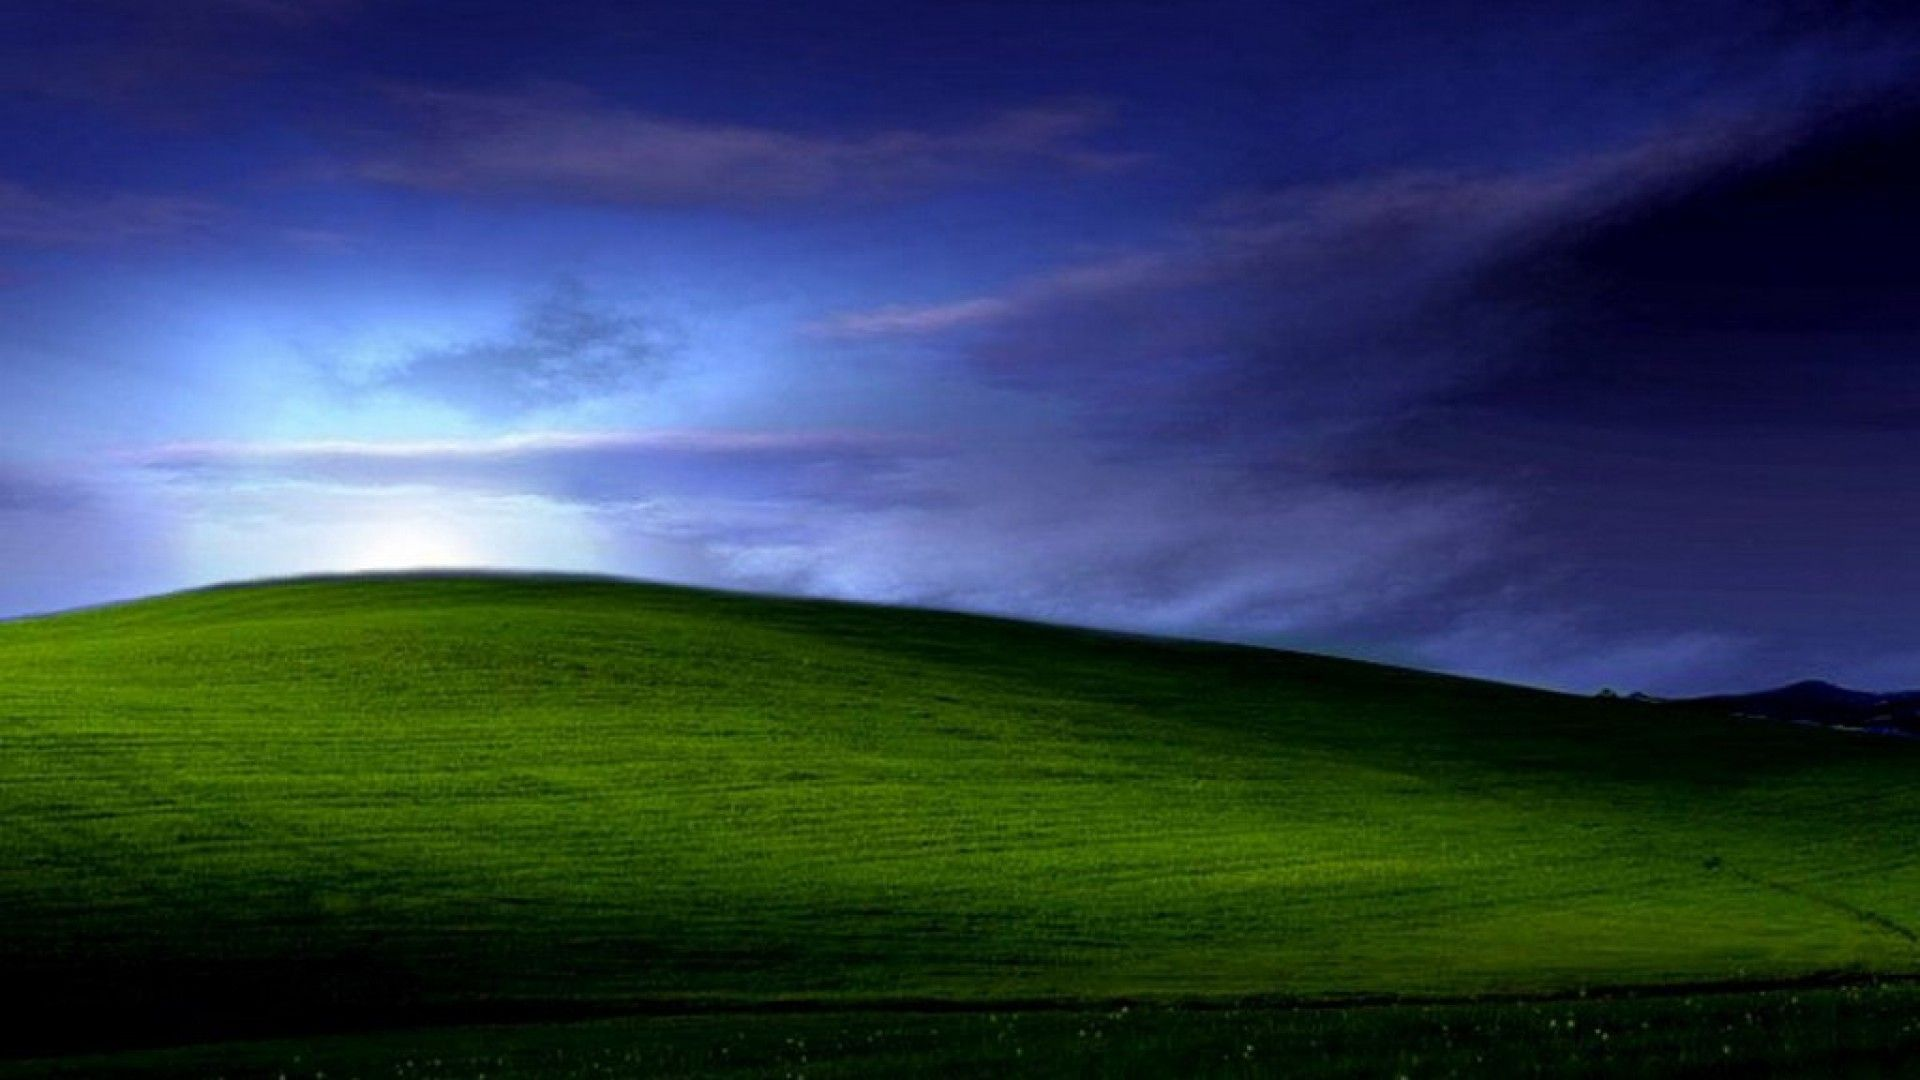 Windows Xp Wallpaper Bliss 4k Wallpaper Windows Beautiful Wallpapers